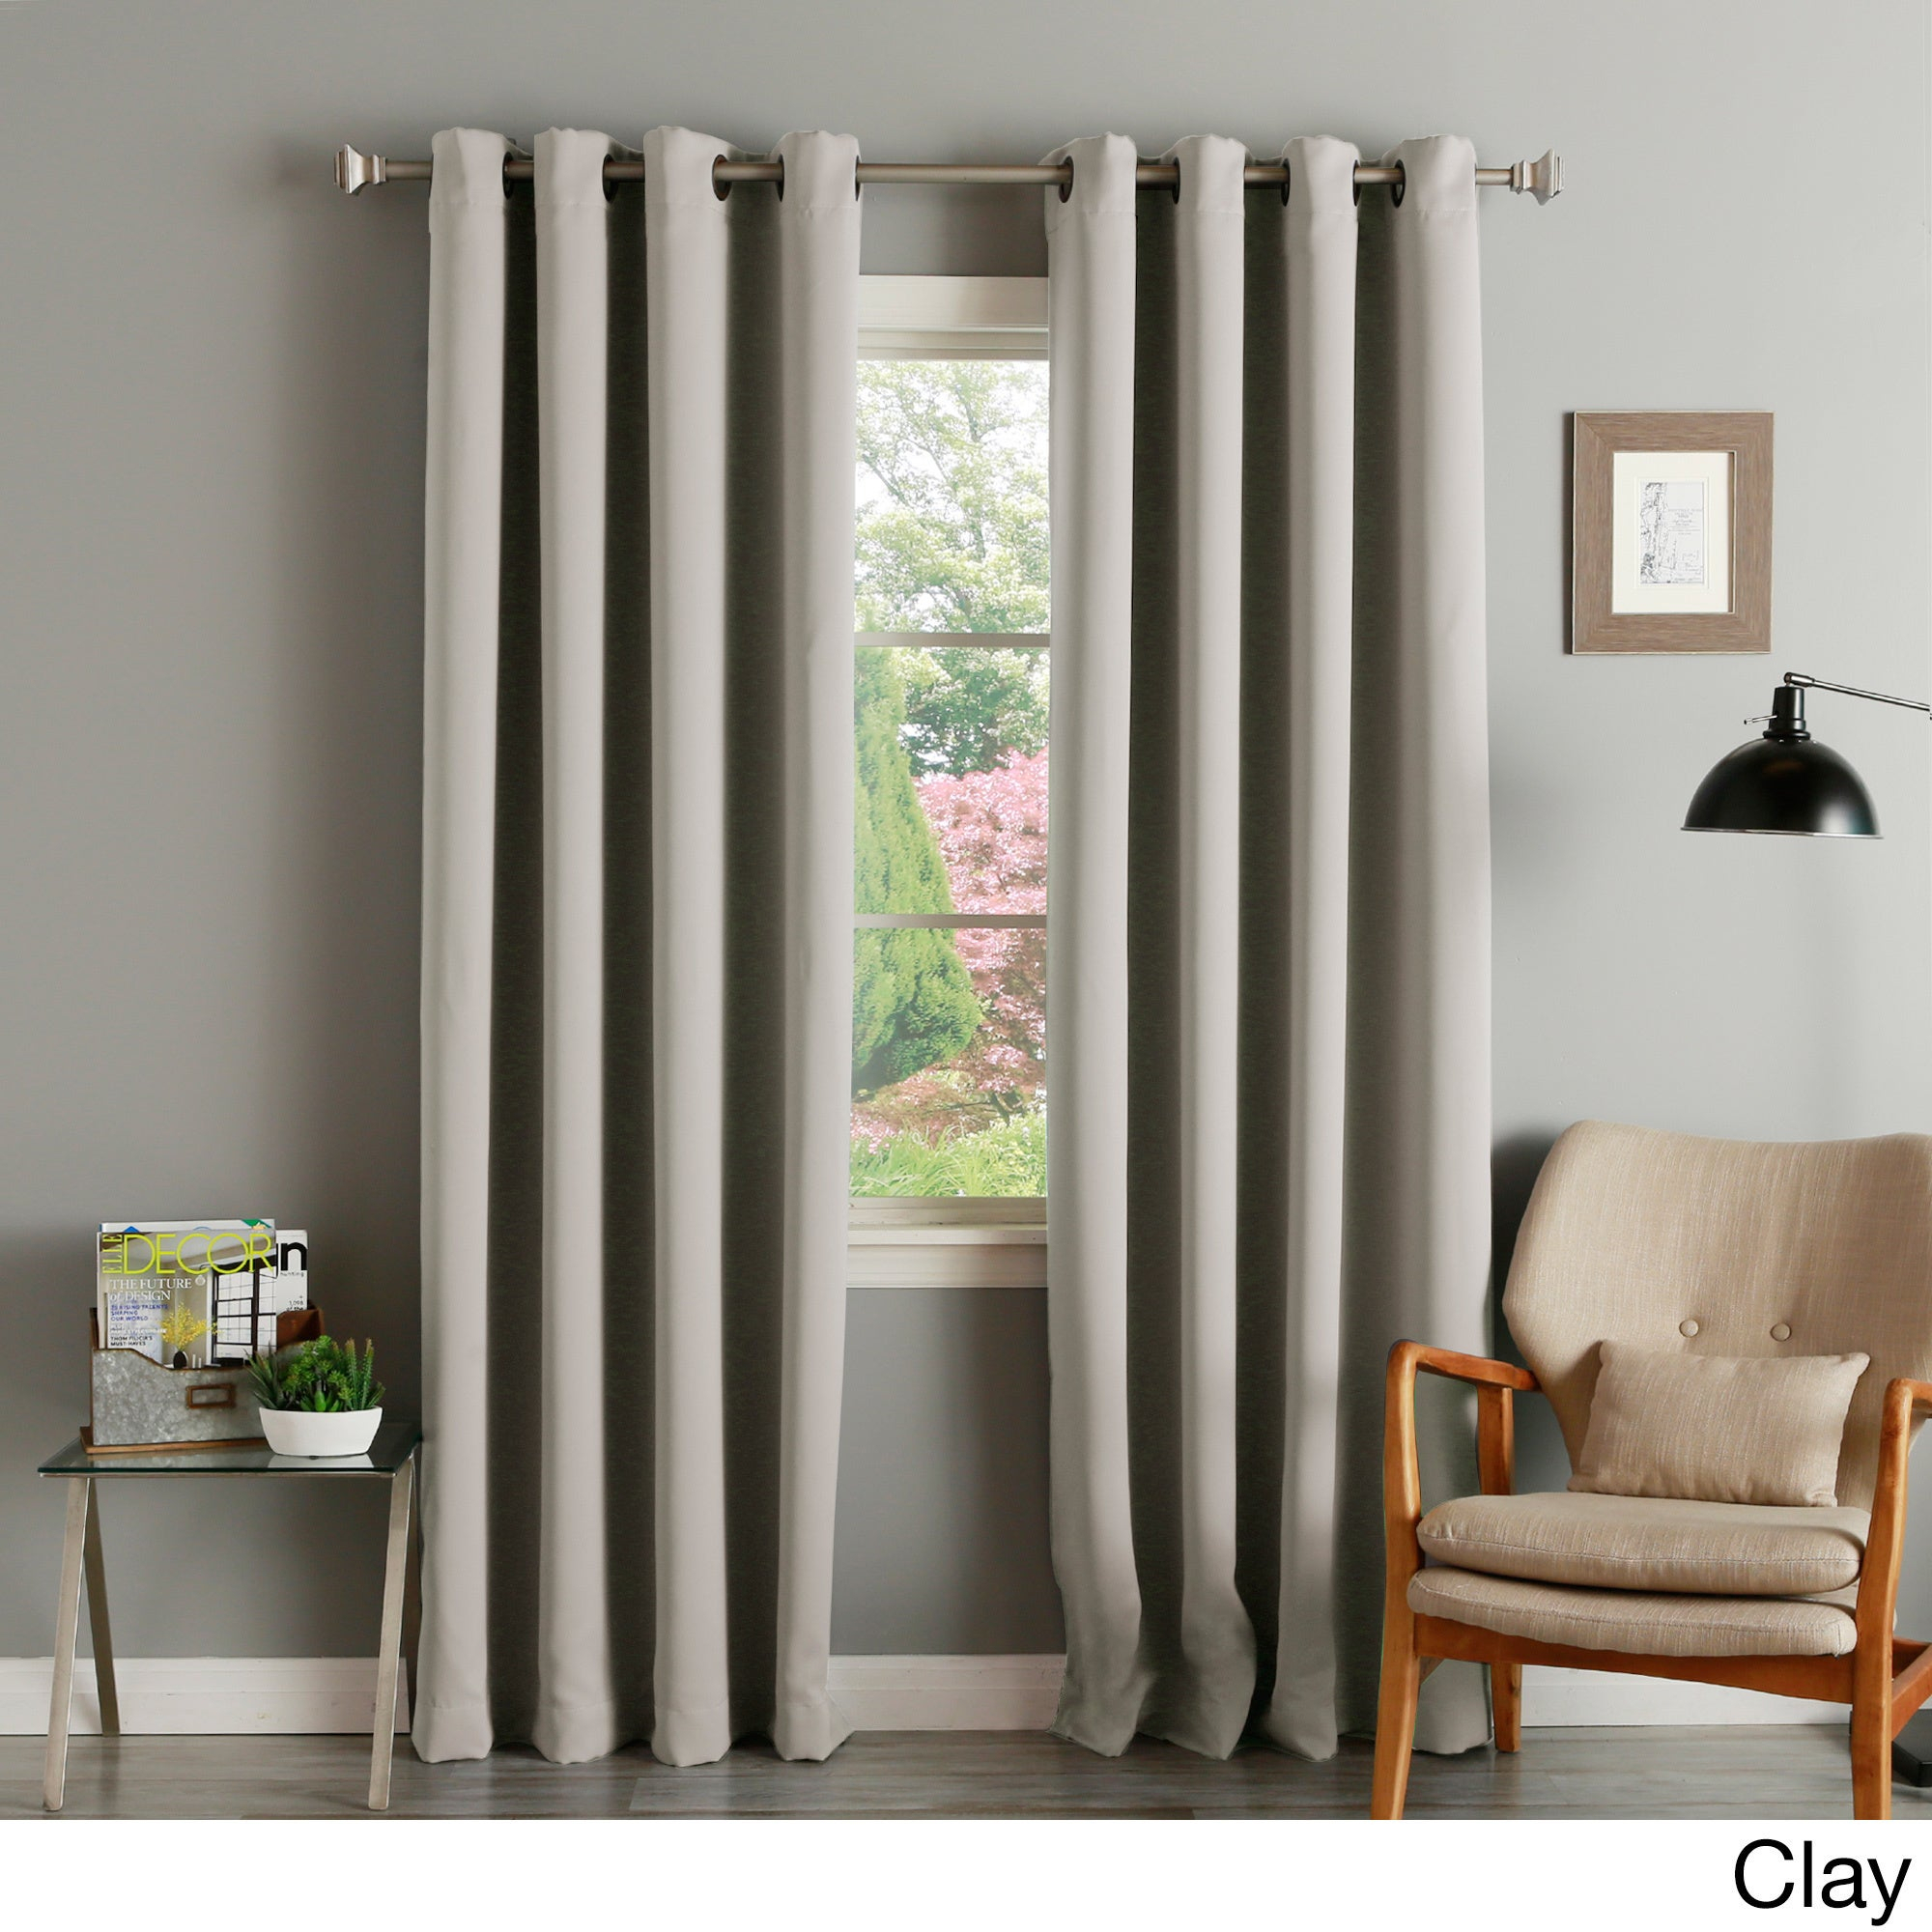 Aurora Home Thermal Insulated Blackout Grommet Top Curtain Panel Pair With Regard To Superior Solid Insulated Thermal Blackout Grommet Curtain Panel Pairs (View 20 of 30)